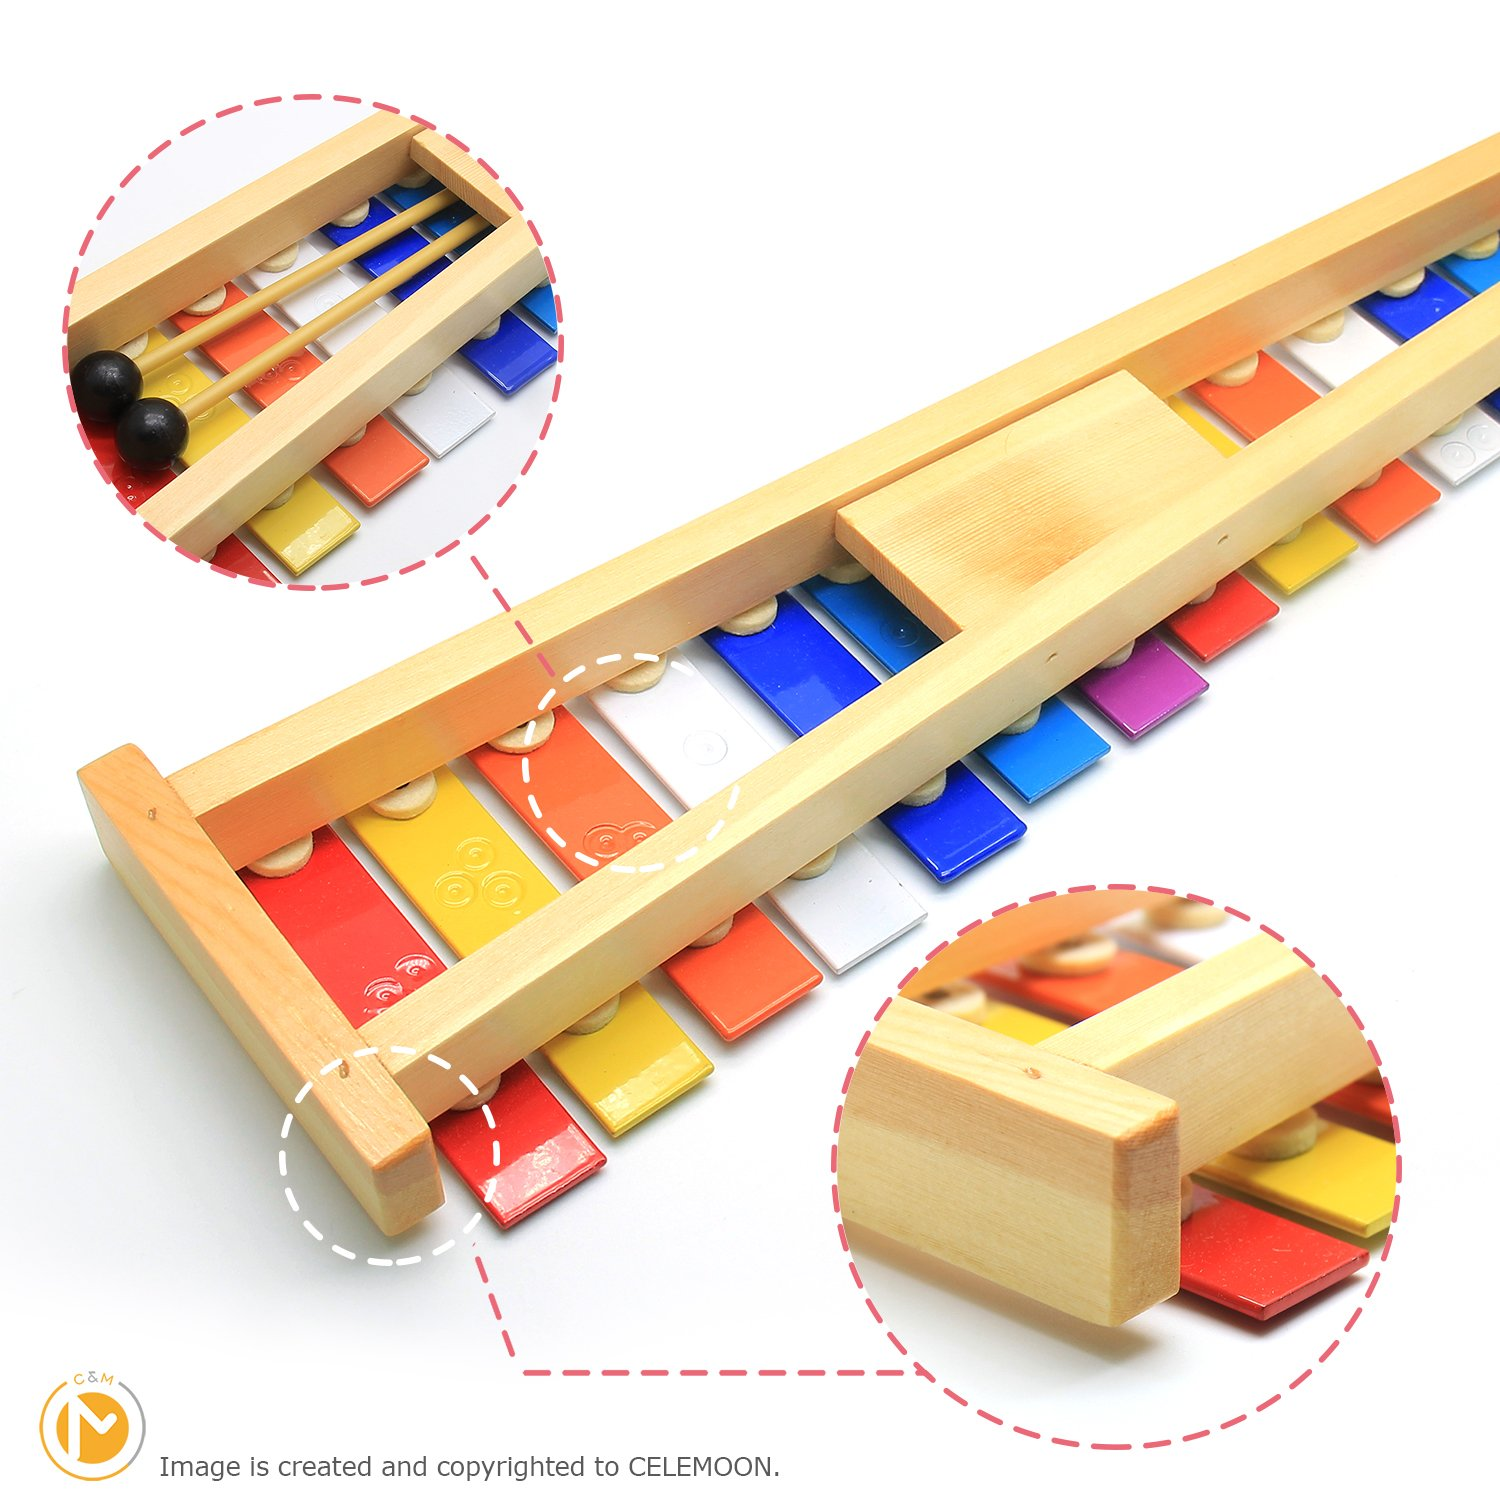 CELEMOON Natural Wooden Toddler Xylophone Glockenspiel For Kids with Multi-Colored Metal Bars Included Two Sets of Child-Safe Wooden Mallets (15-tone) by CELEMOON (Image #3)